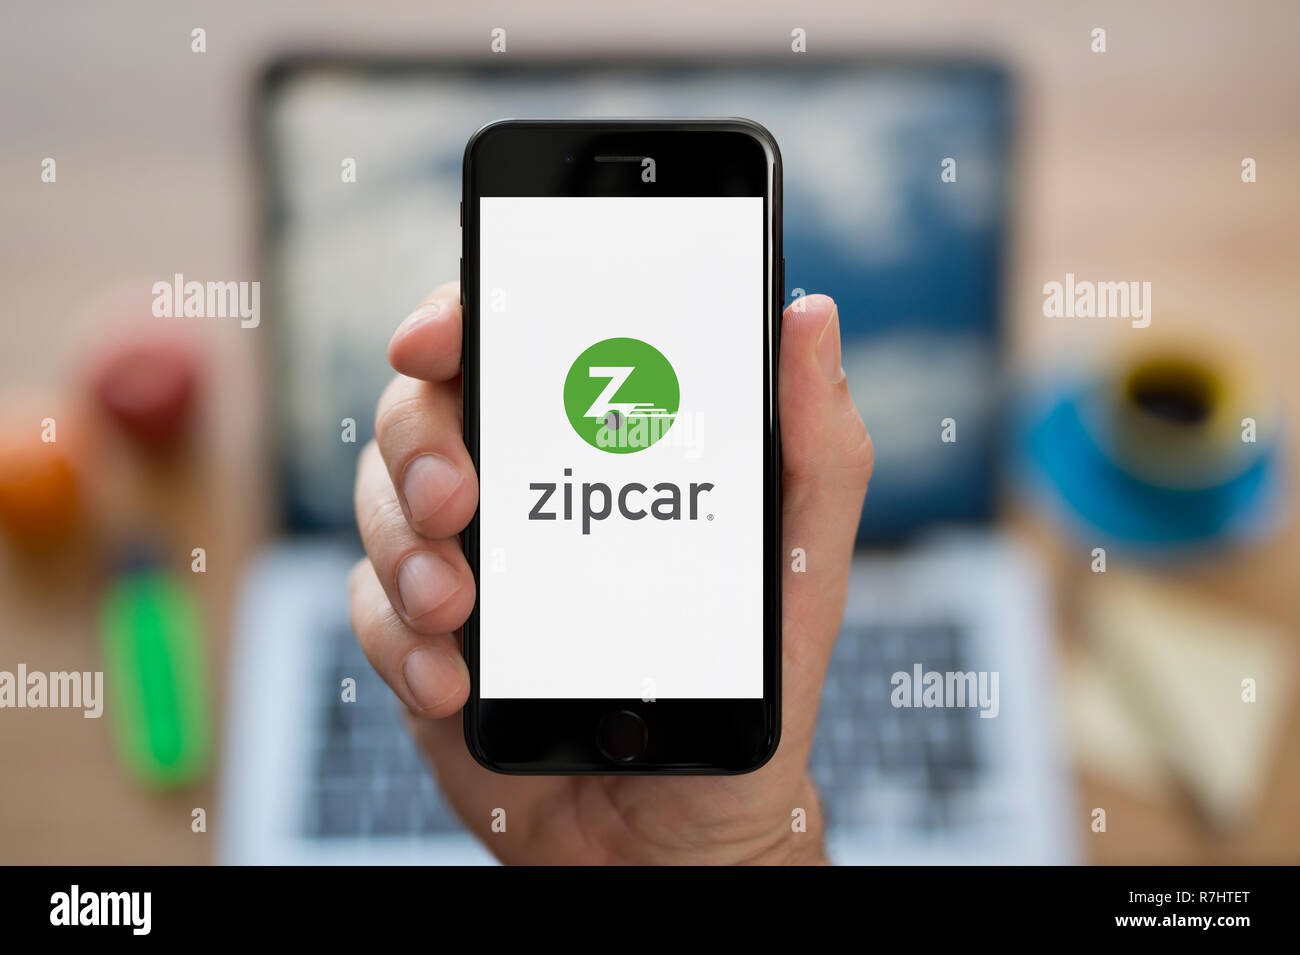 A man looks at his iPhone which displays the ZipCar logo (Editorial use only). - Stock Image